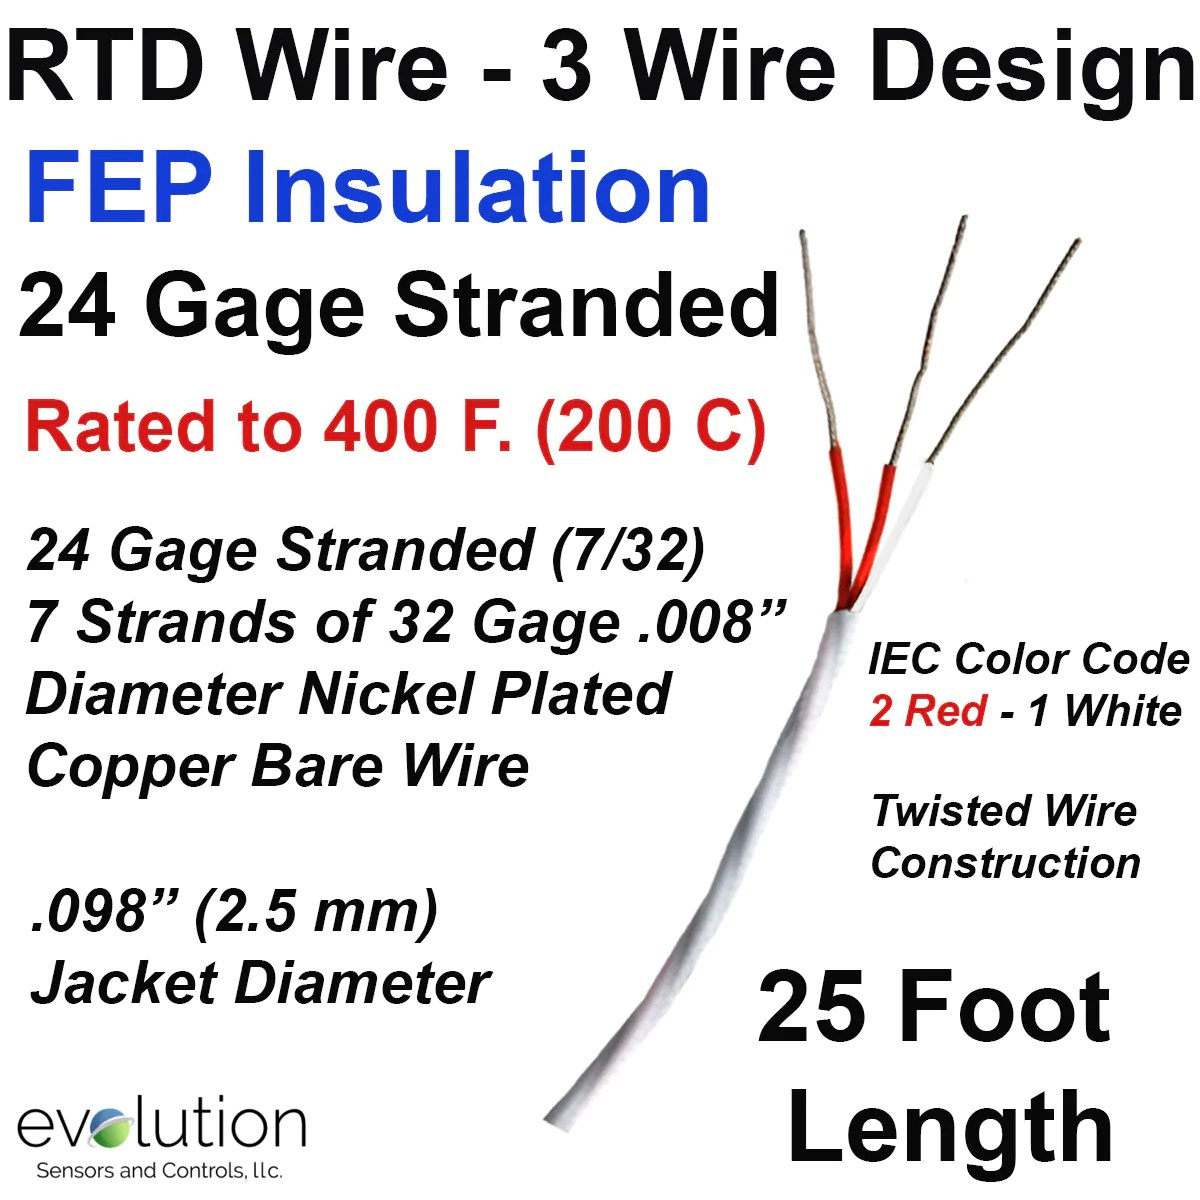 hight resolution of rtd wire 3 wire design 24 gage stranded with fep insulation 25 rtd wiring color code